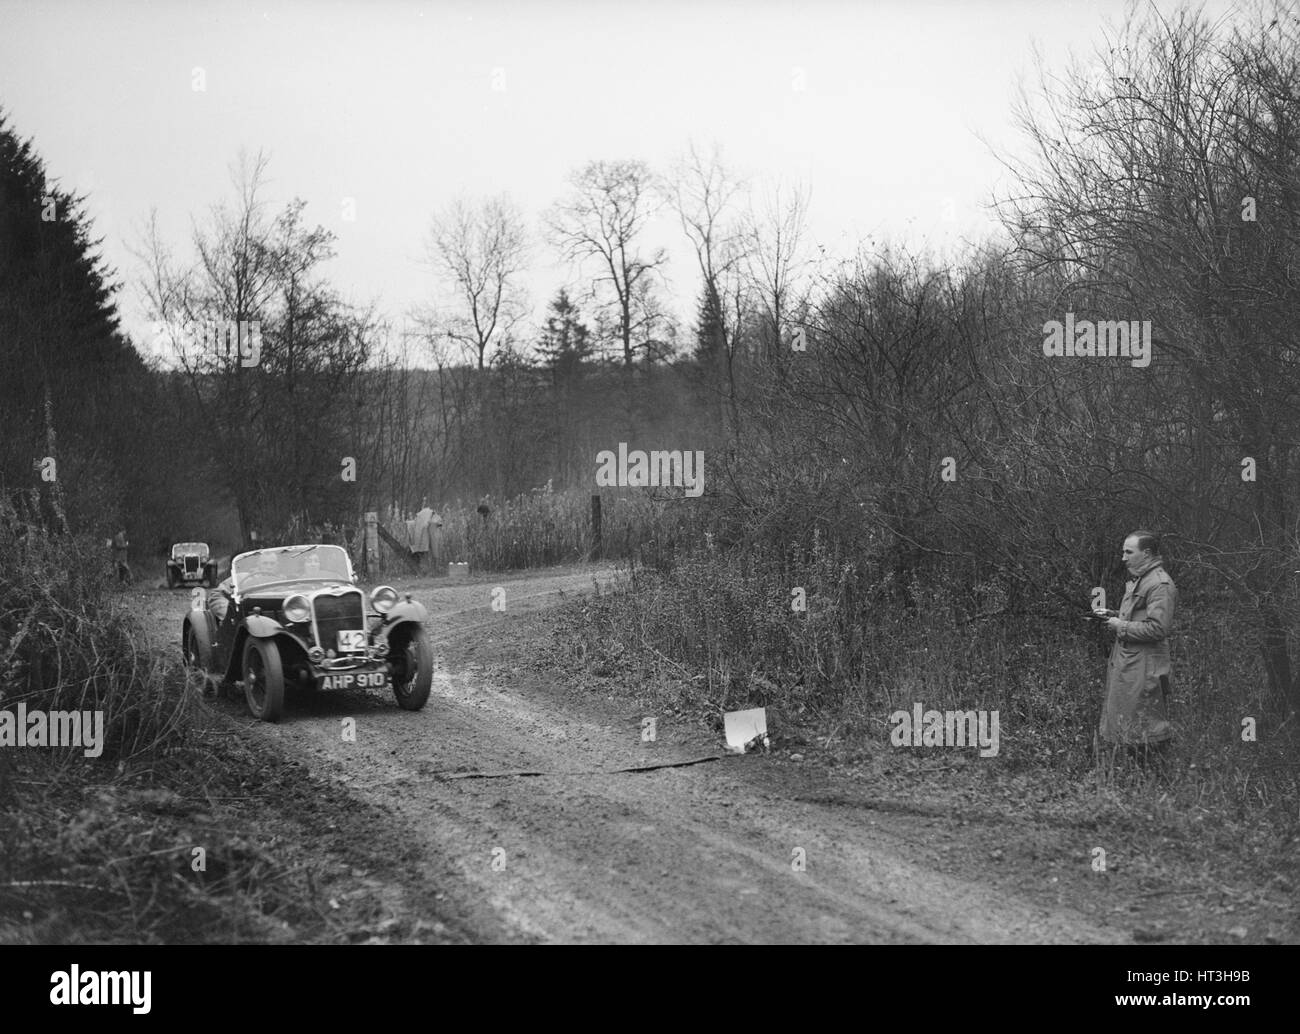 1935 972 cc Singer competing in the Great West Motor Club Thatcher Trophy, 1938. Artist: Bill Brunell. - Stock Image